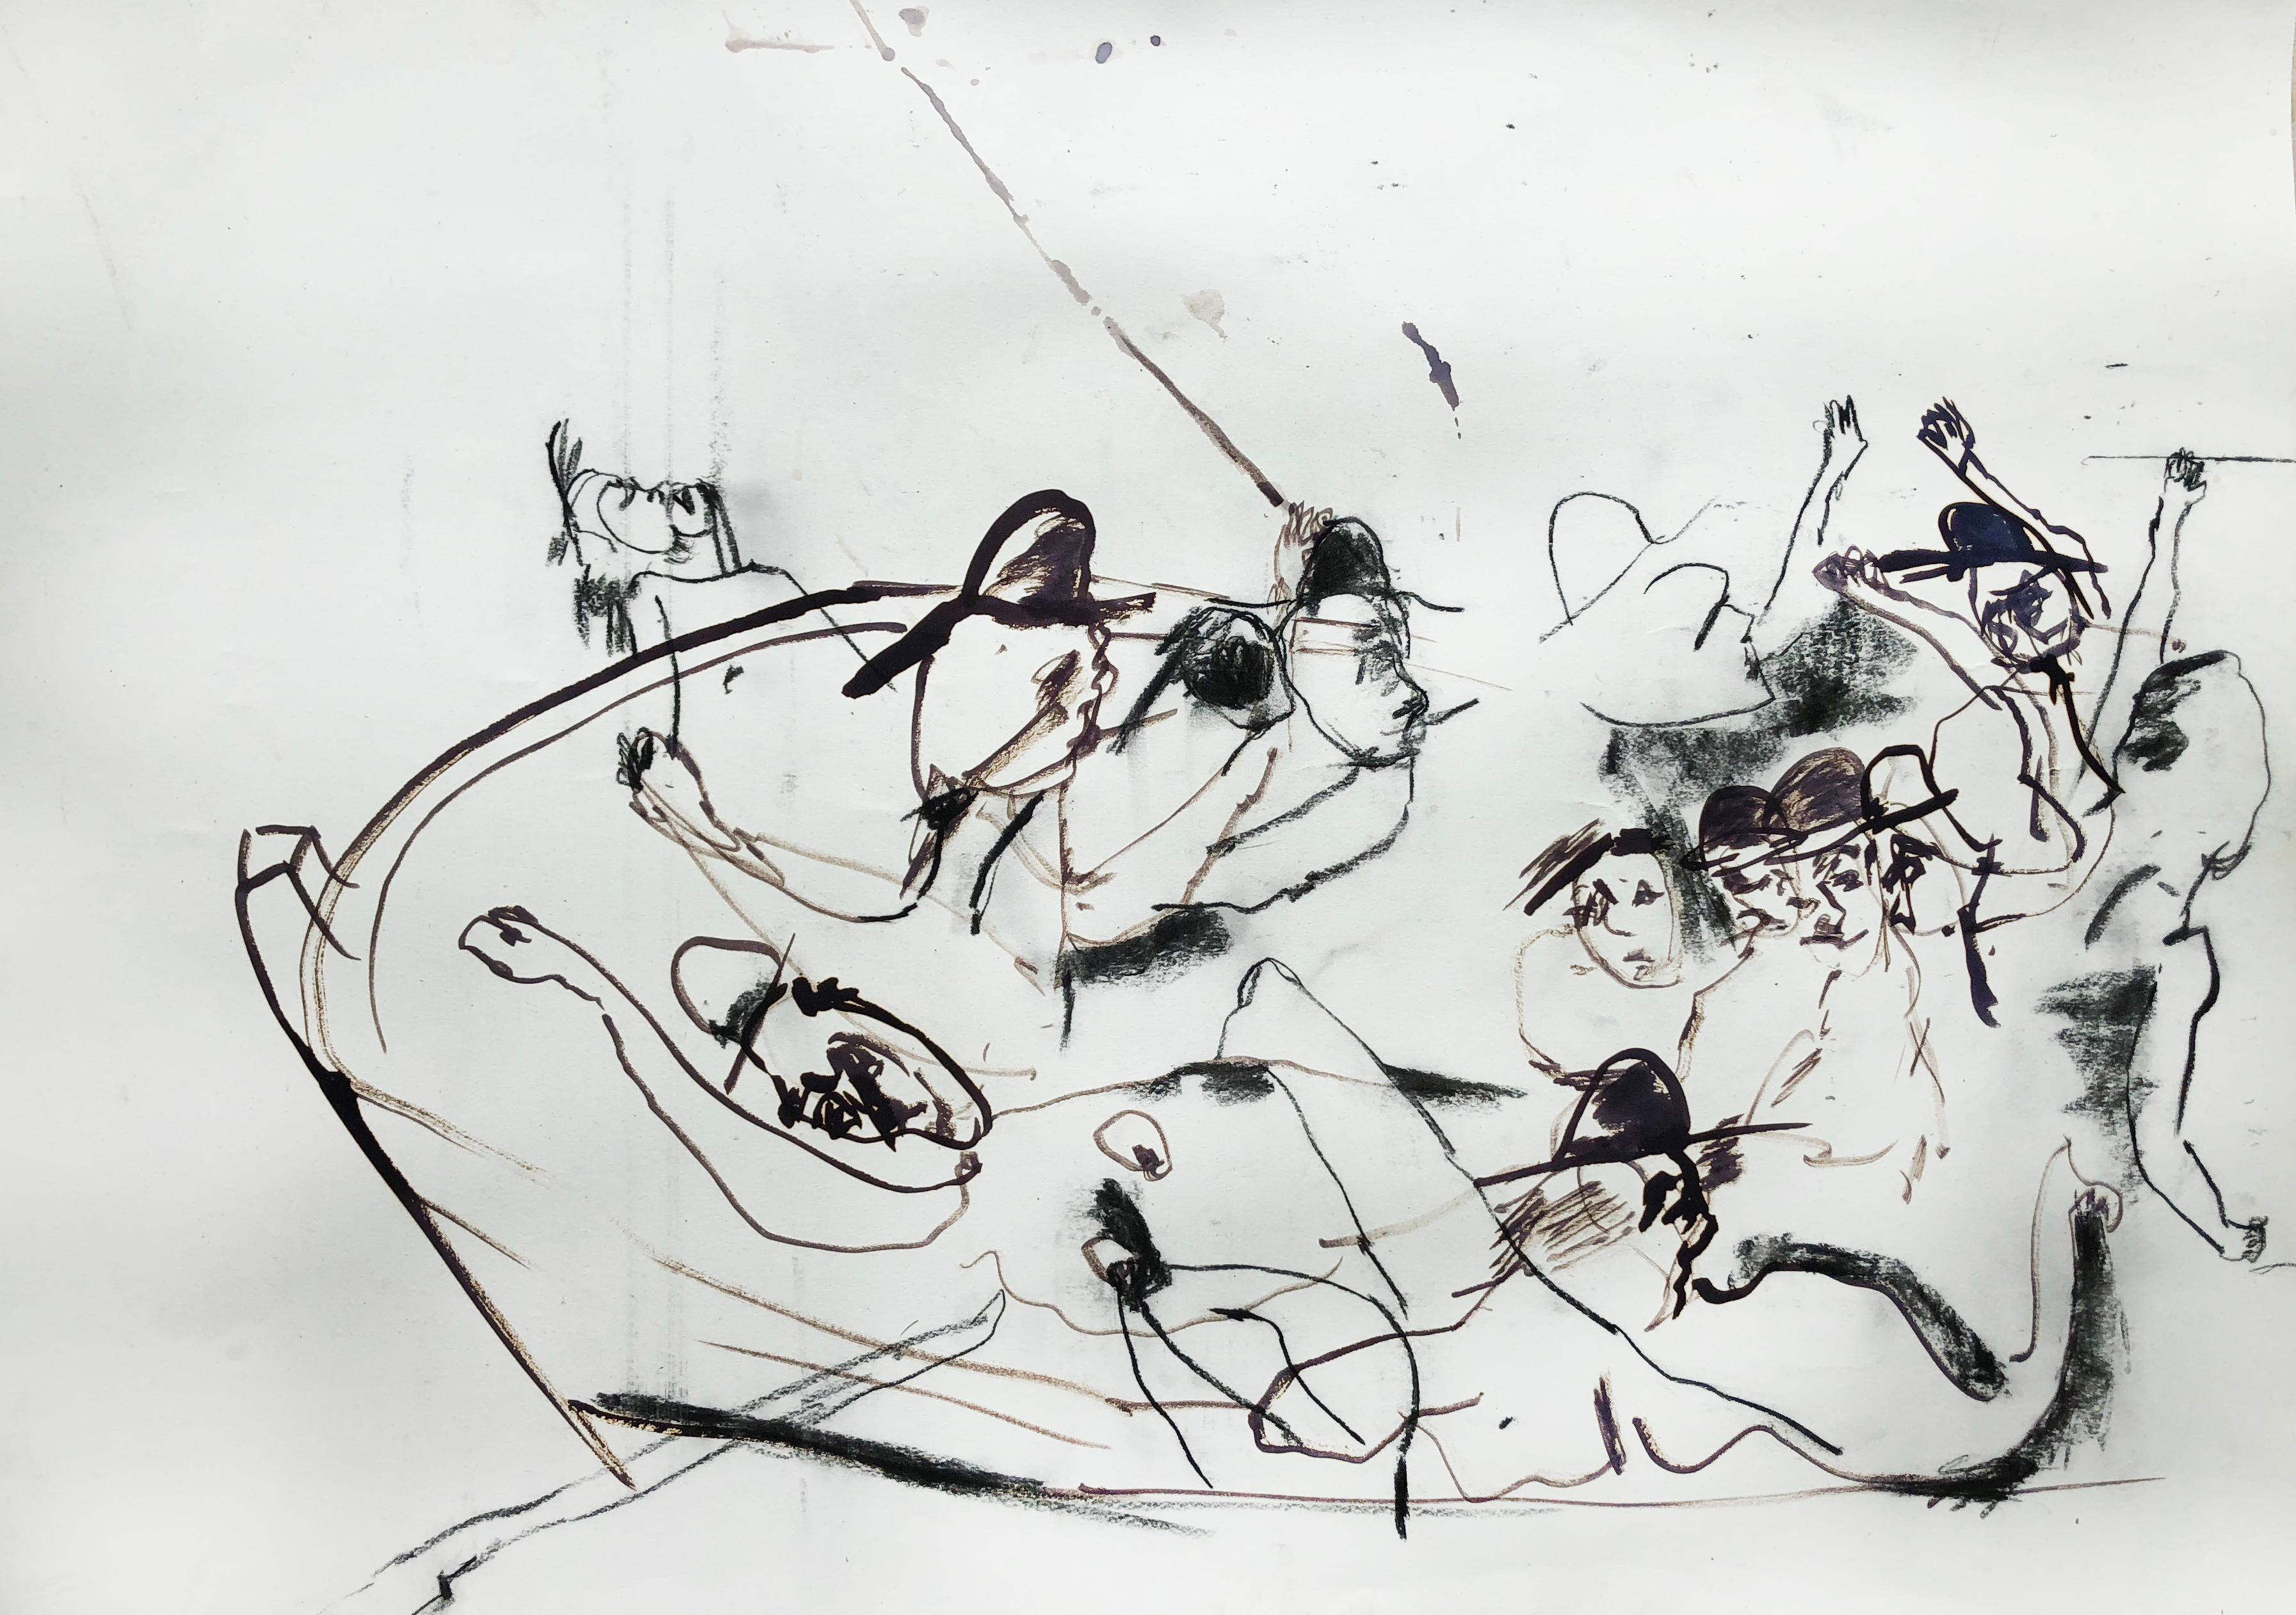 Sketch (Maumere), black and white abstract expressionist work on paper